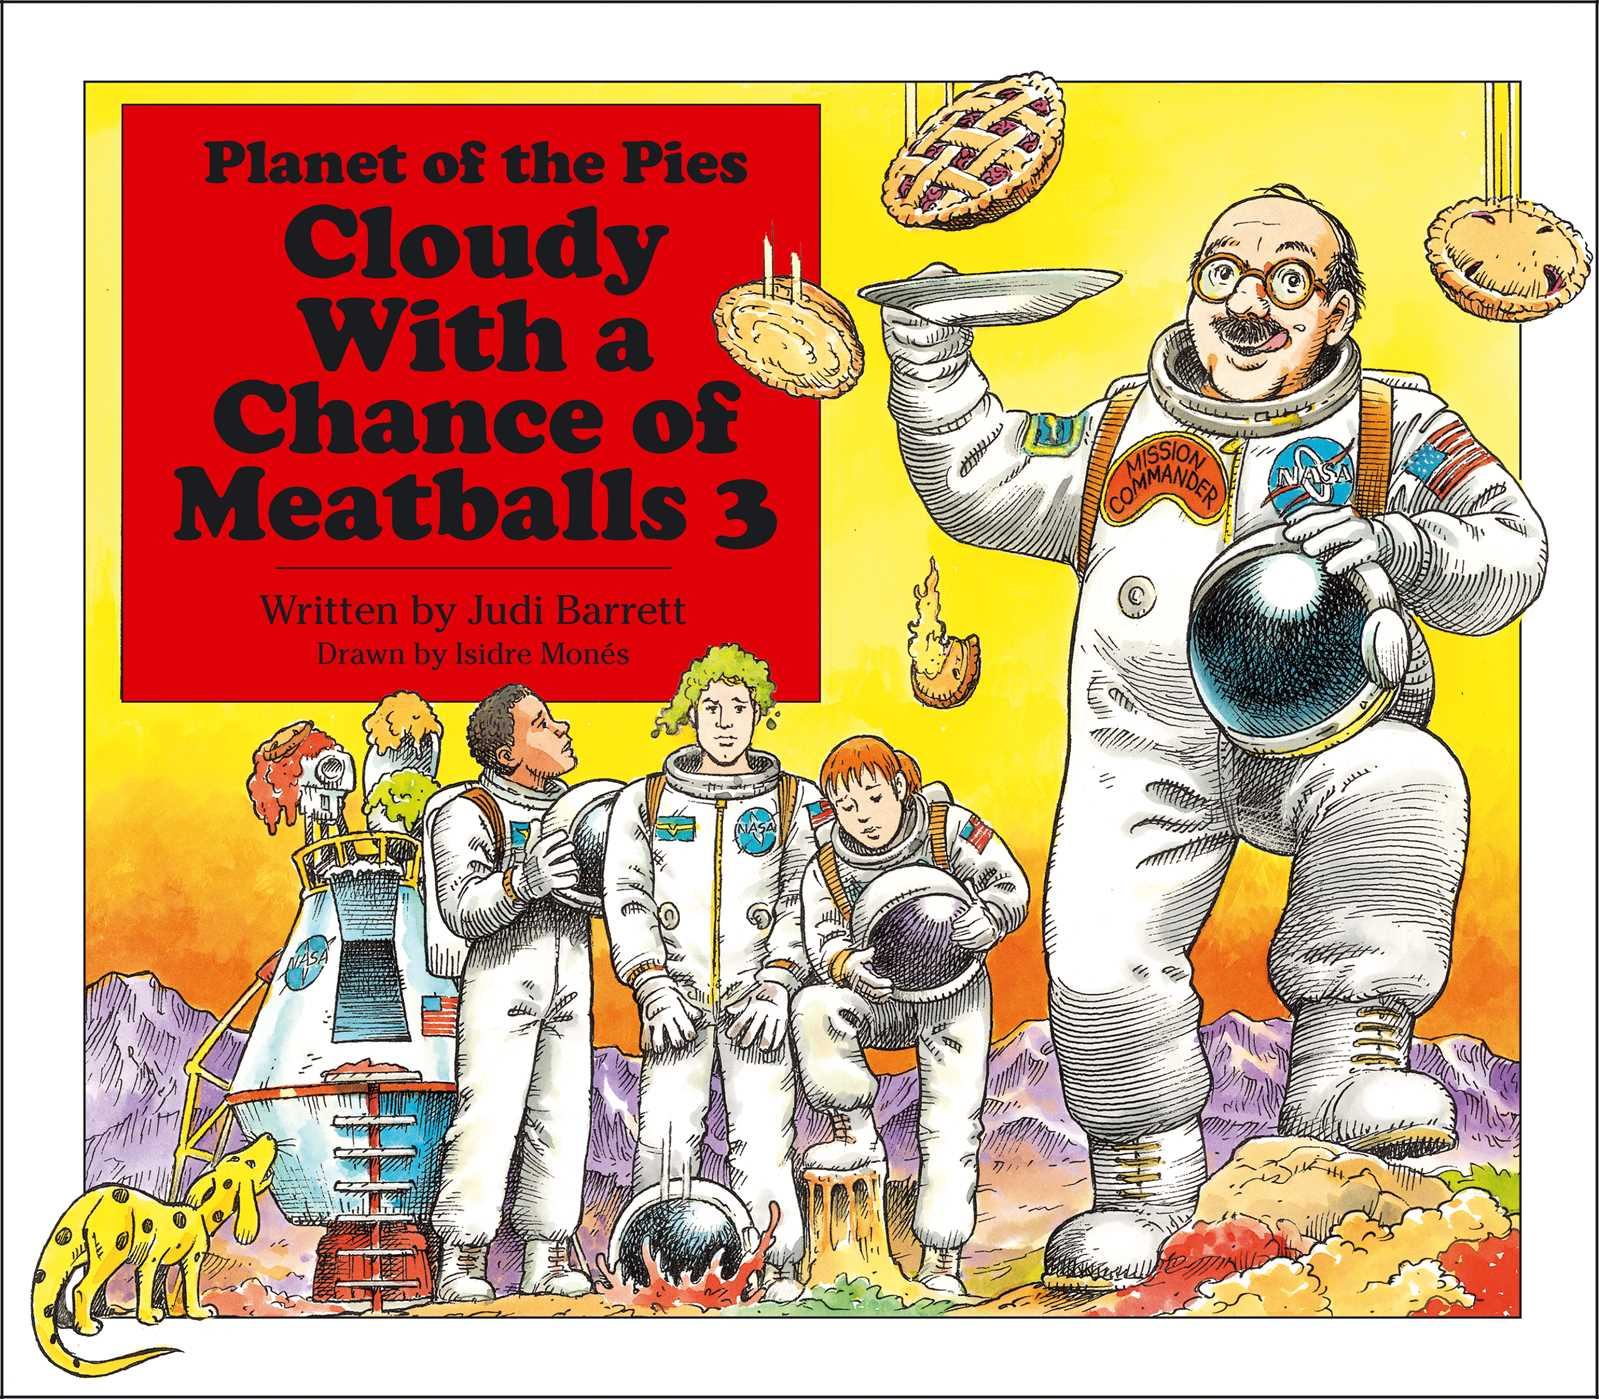 Cloudy-with-a-chance-of-meatballs-3-9781442490284_hr